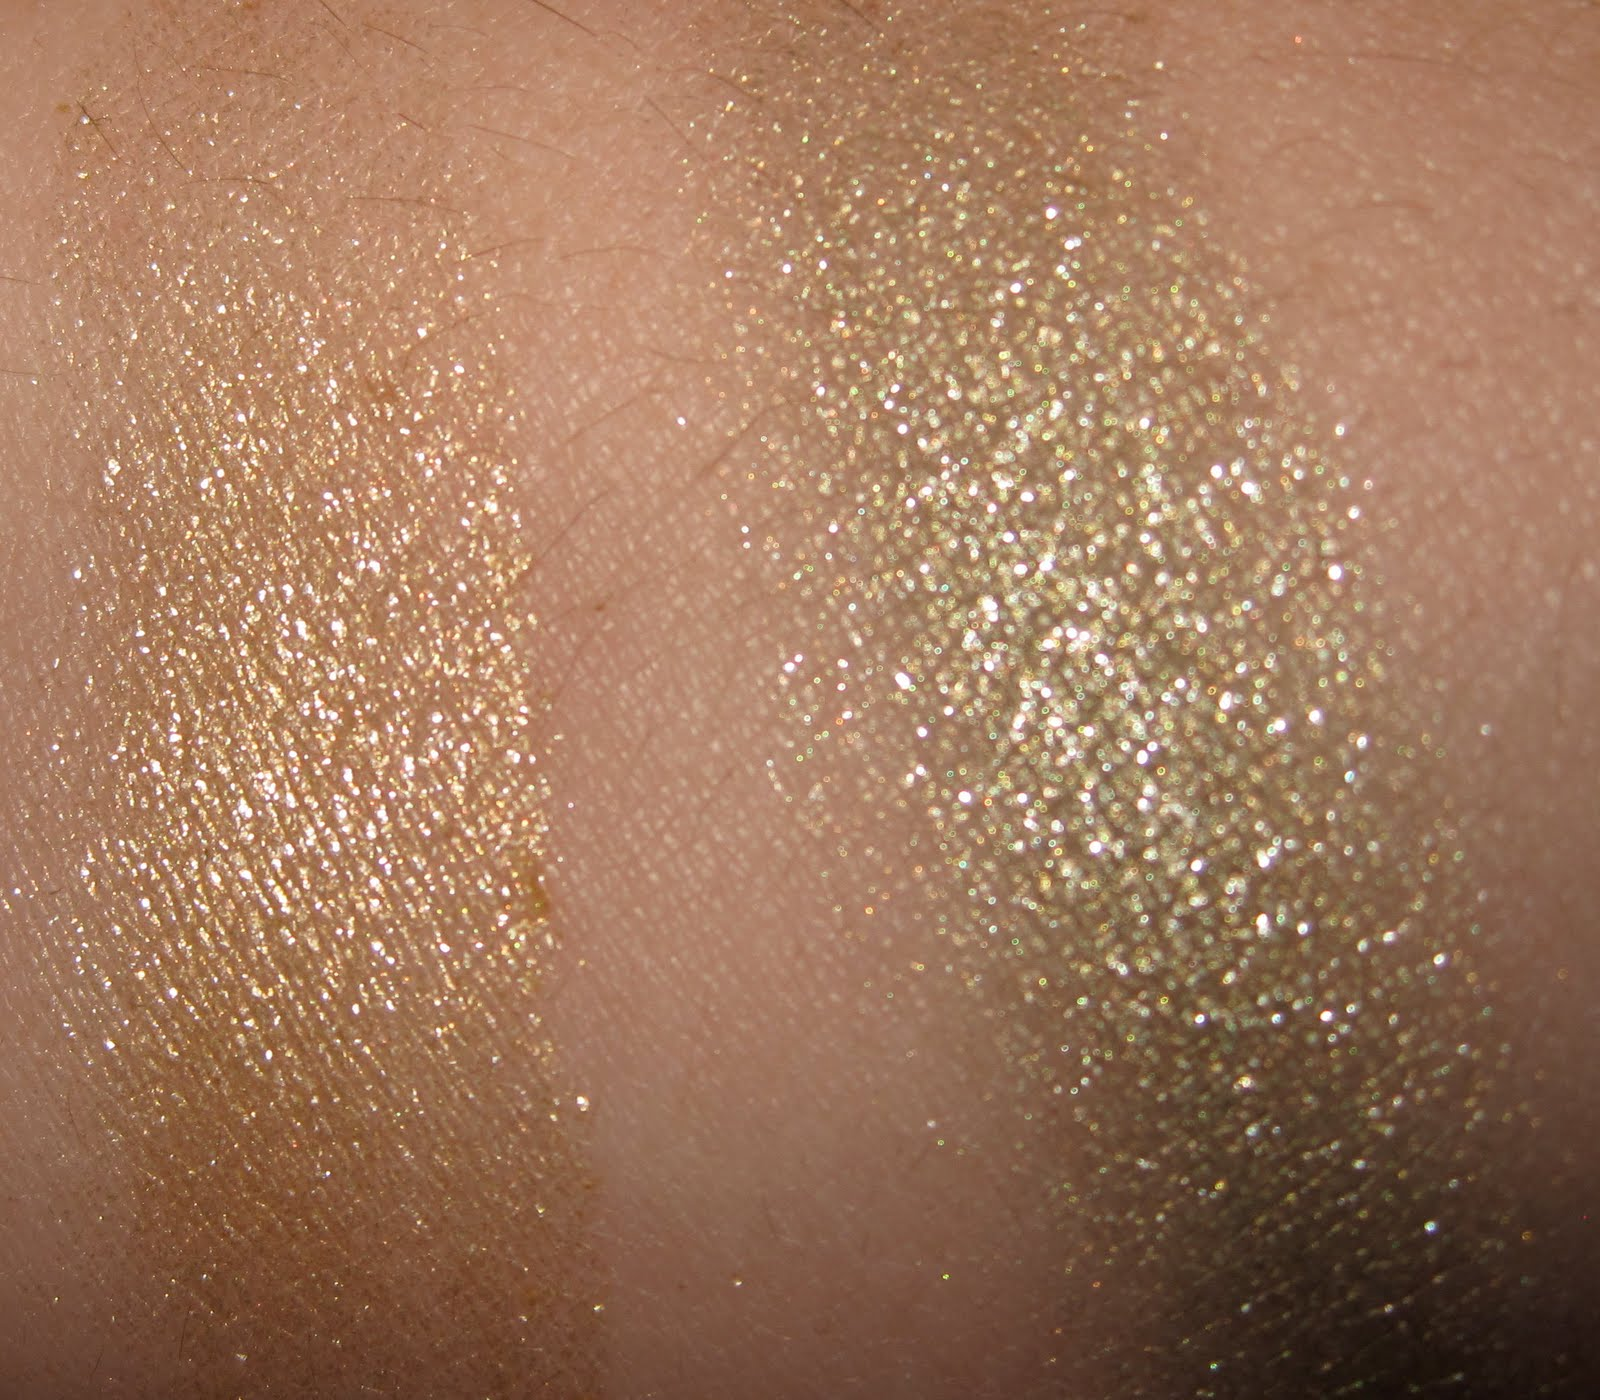 fd2e6ec911536 Beauty In The Breakdown: Victoria's Secret Eyeshadows Pt. 2